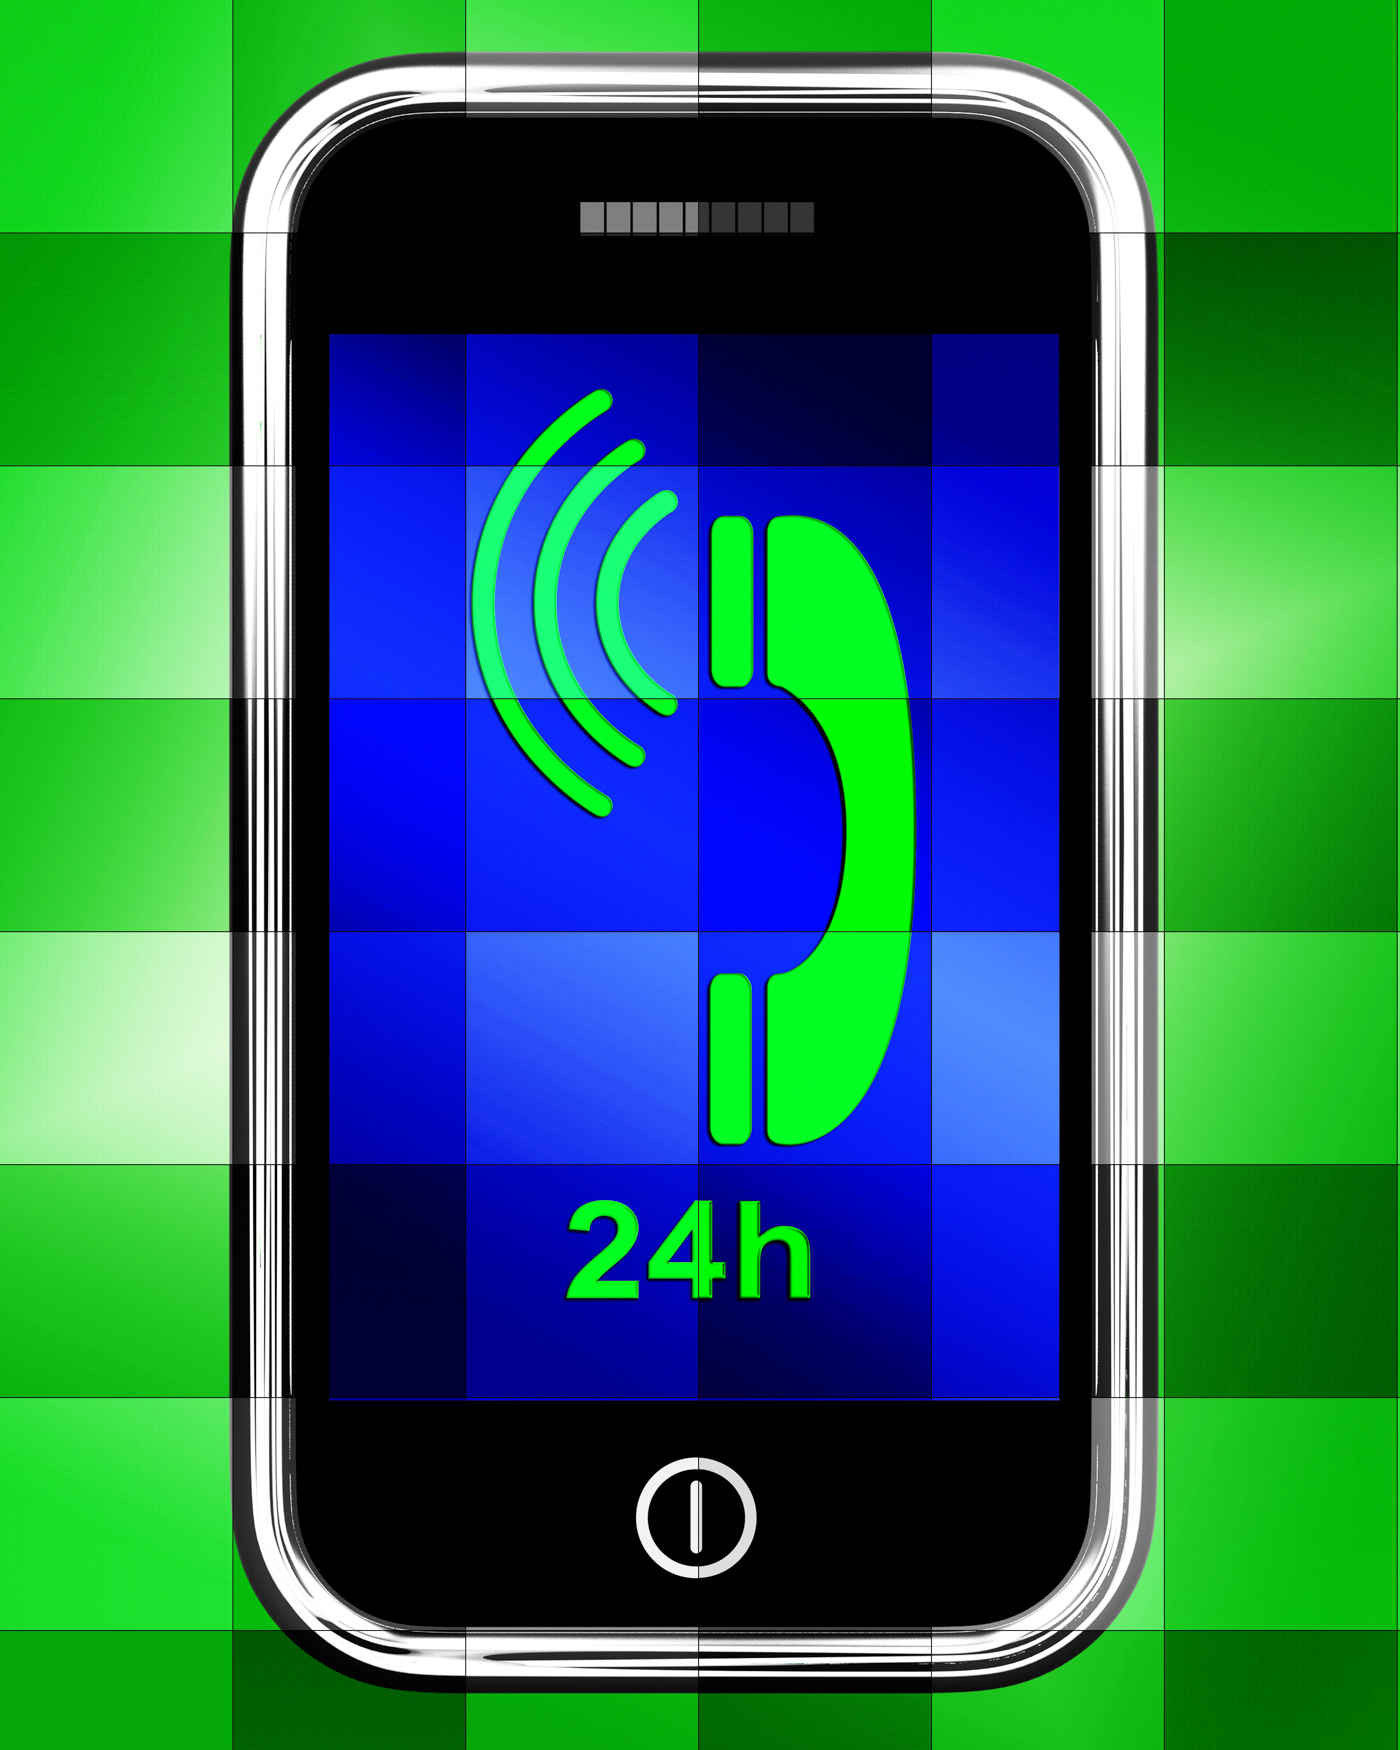 Twenty Four Hour On Phone Displays Open 24h, Internet, Web, Twentyfour, Smartphone, HQ Photo